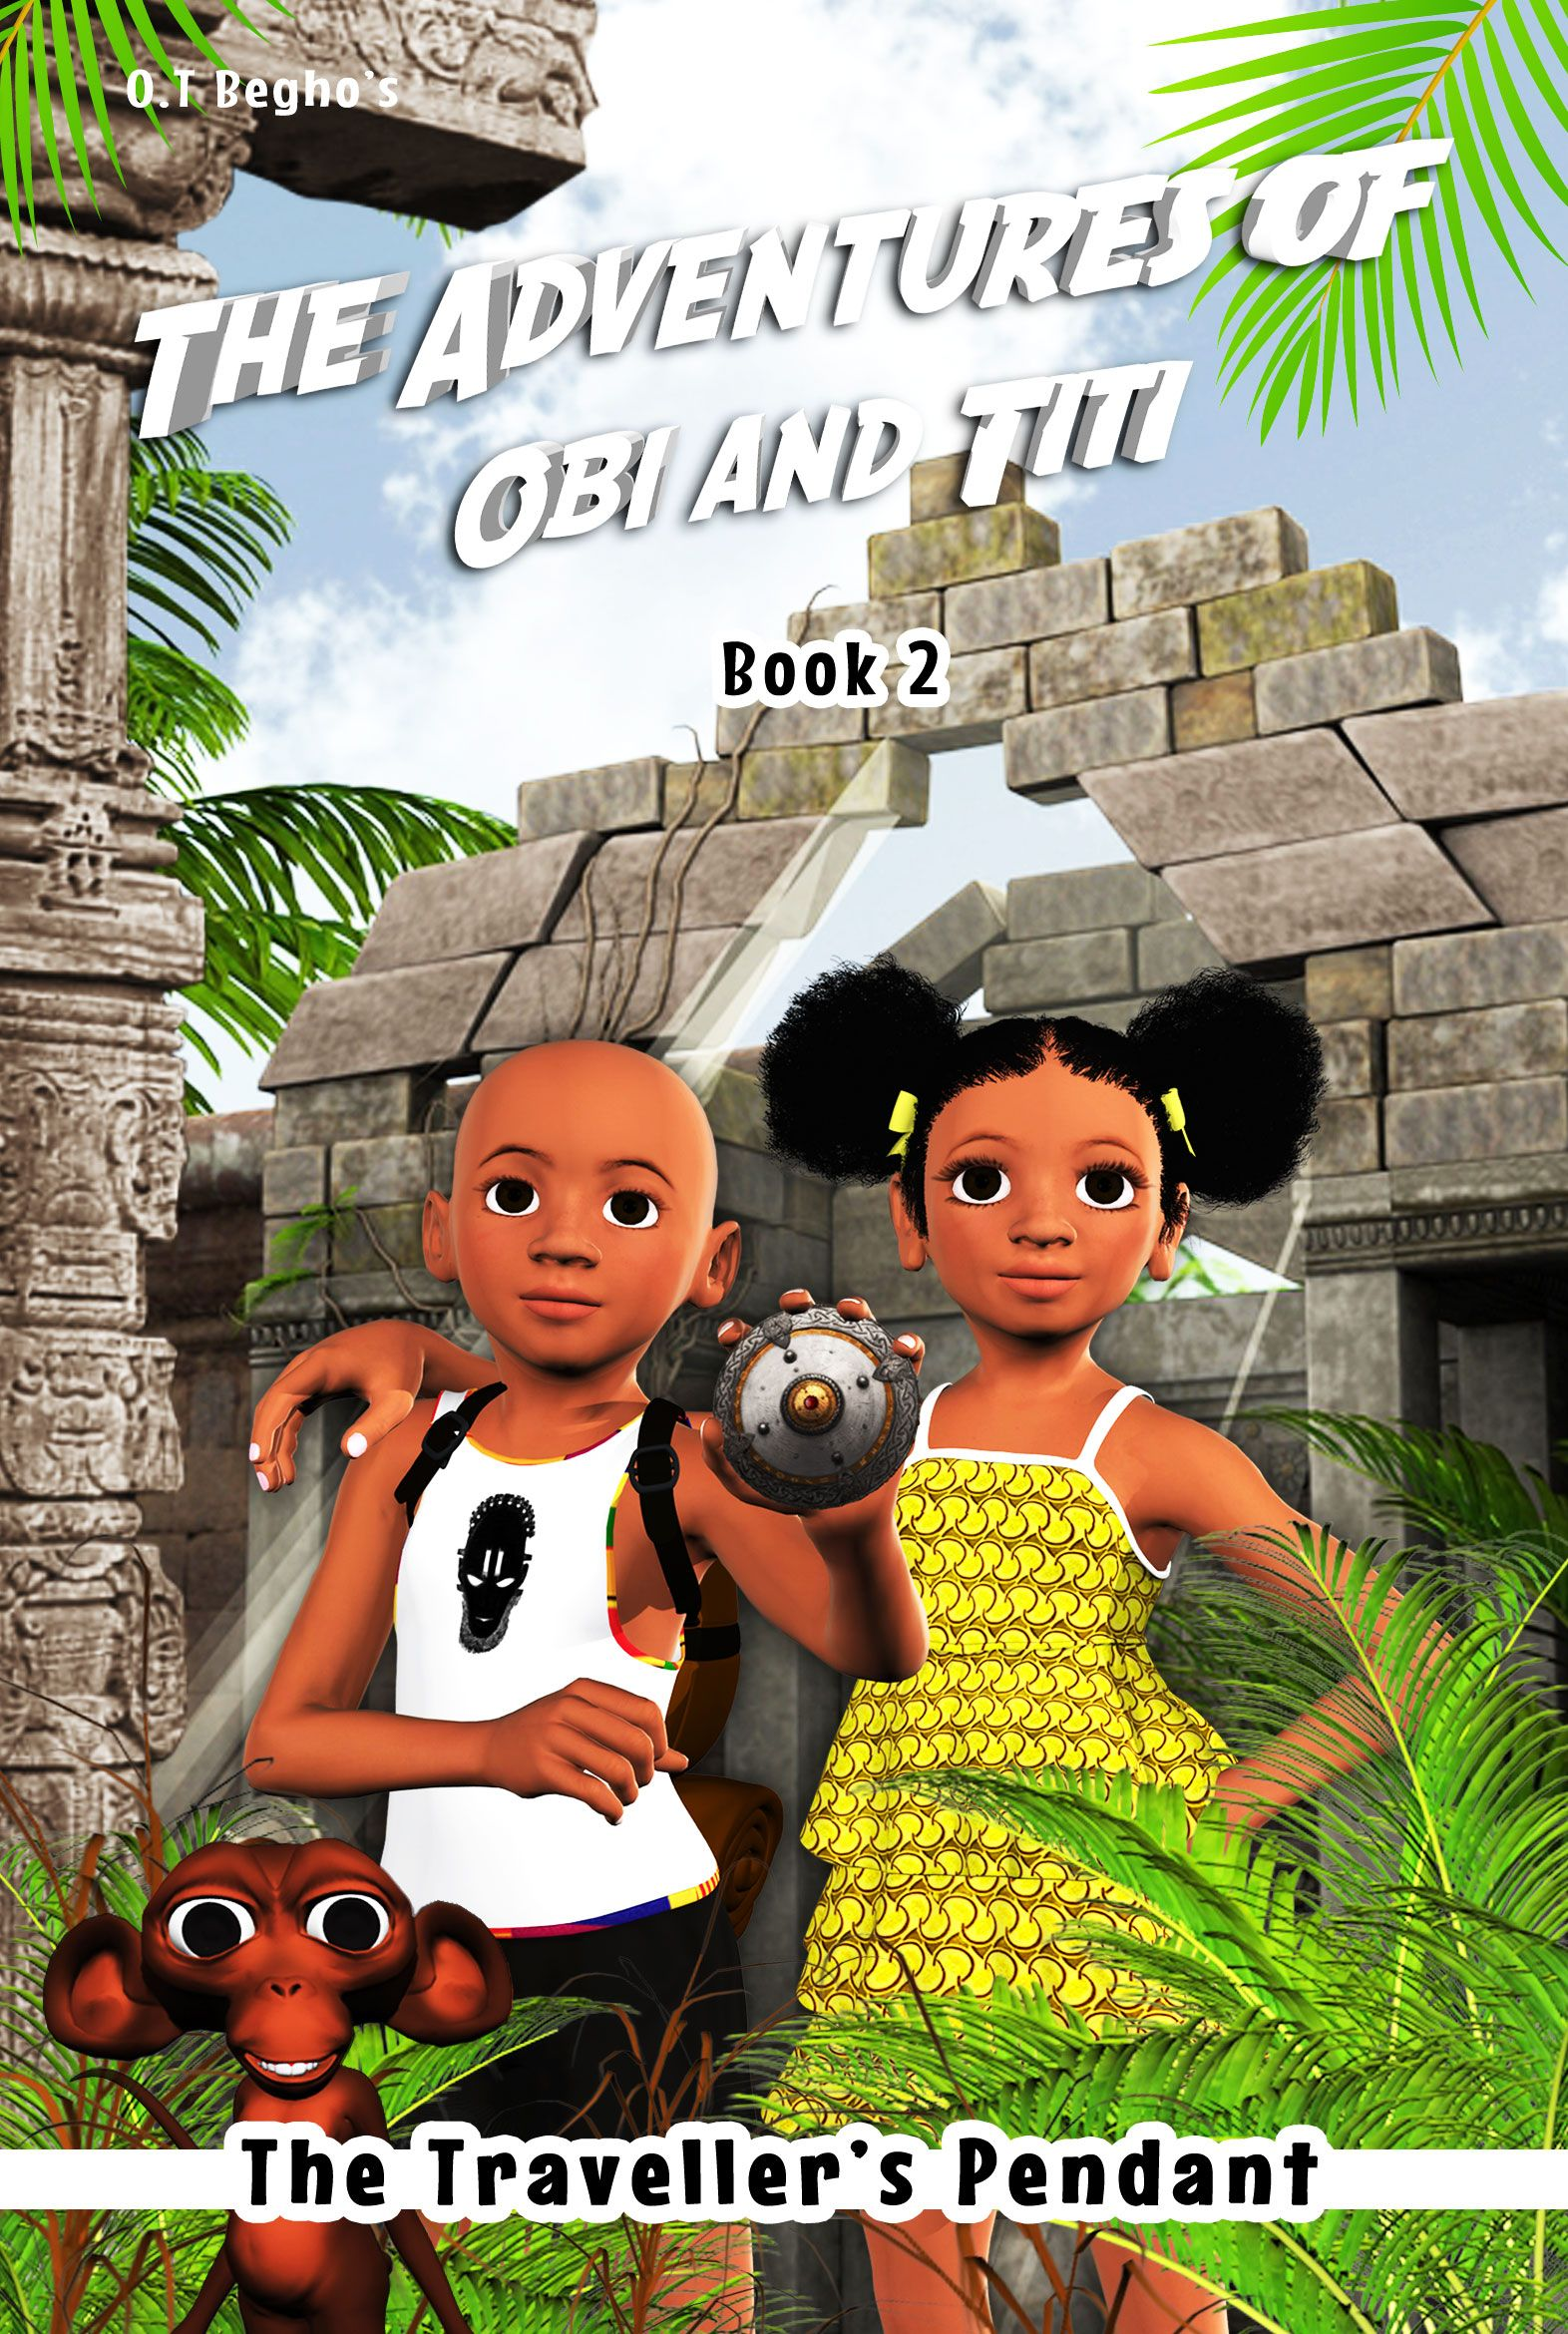 Pin by Obi and Titi on Books featuring black children